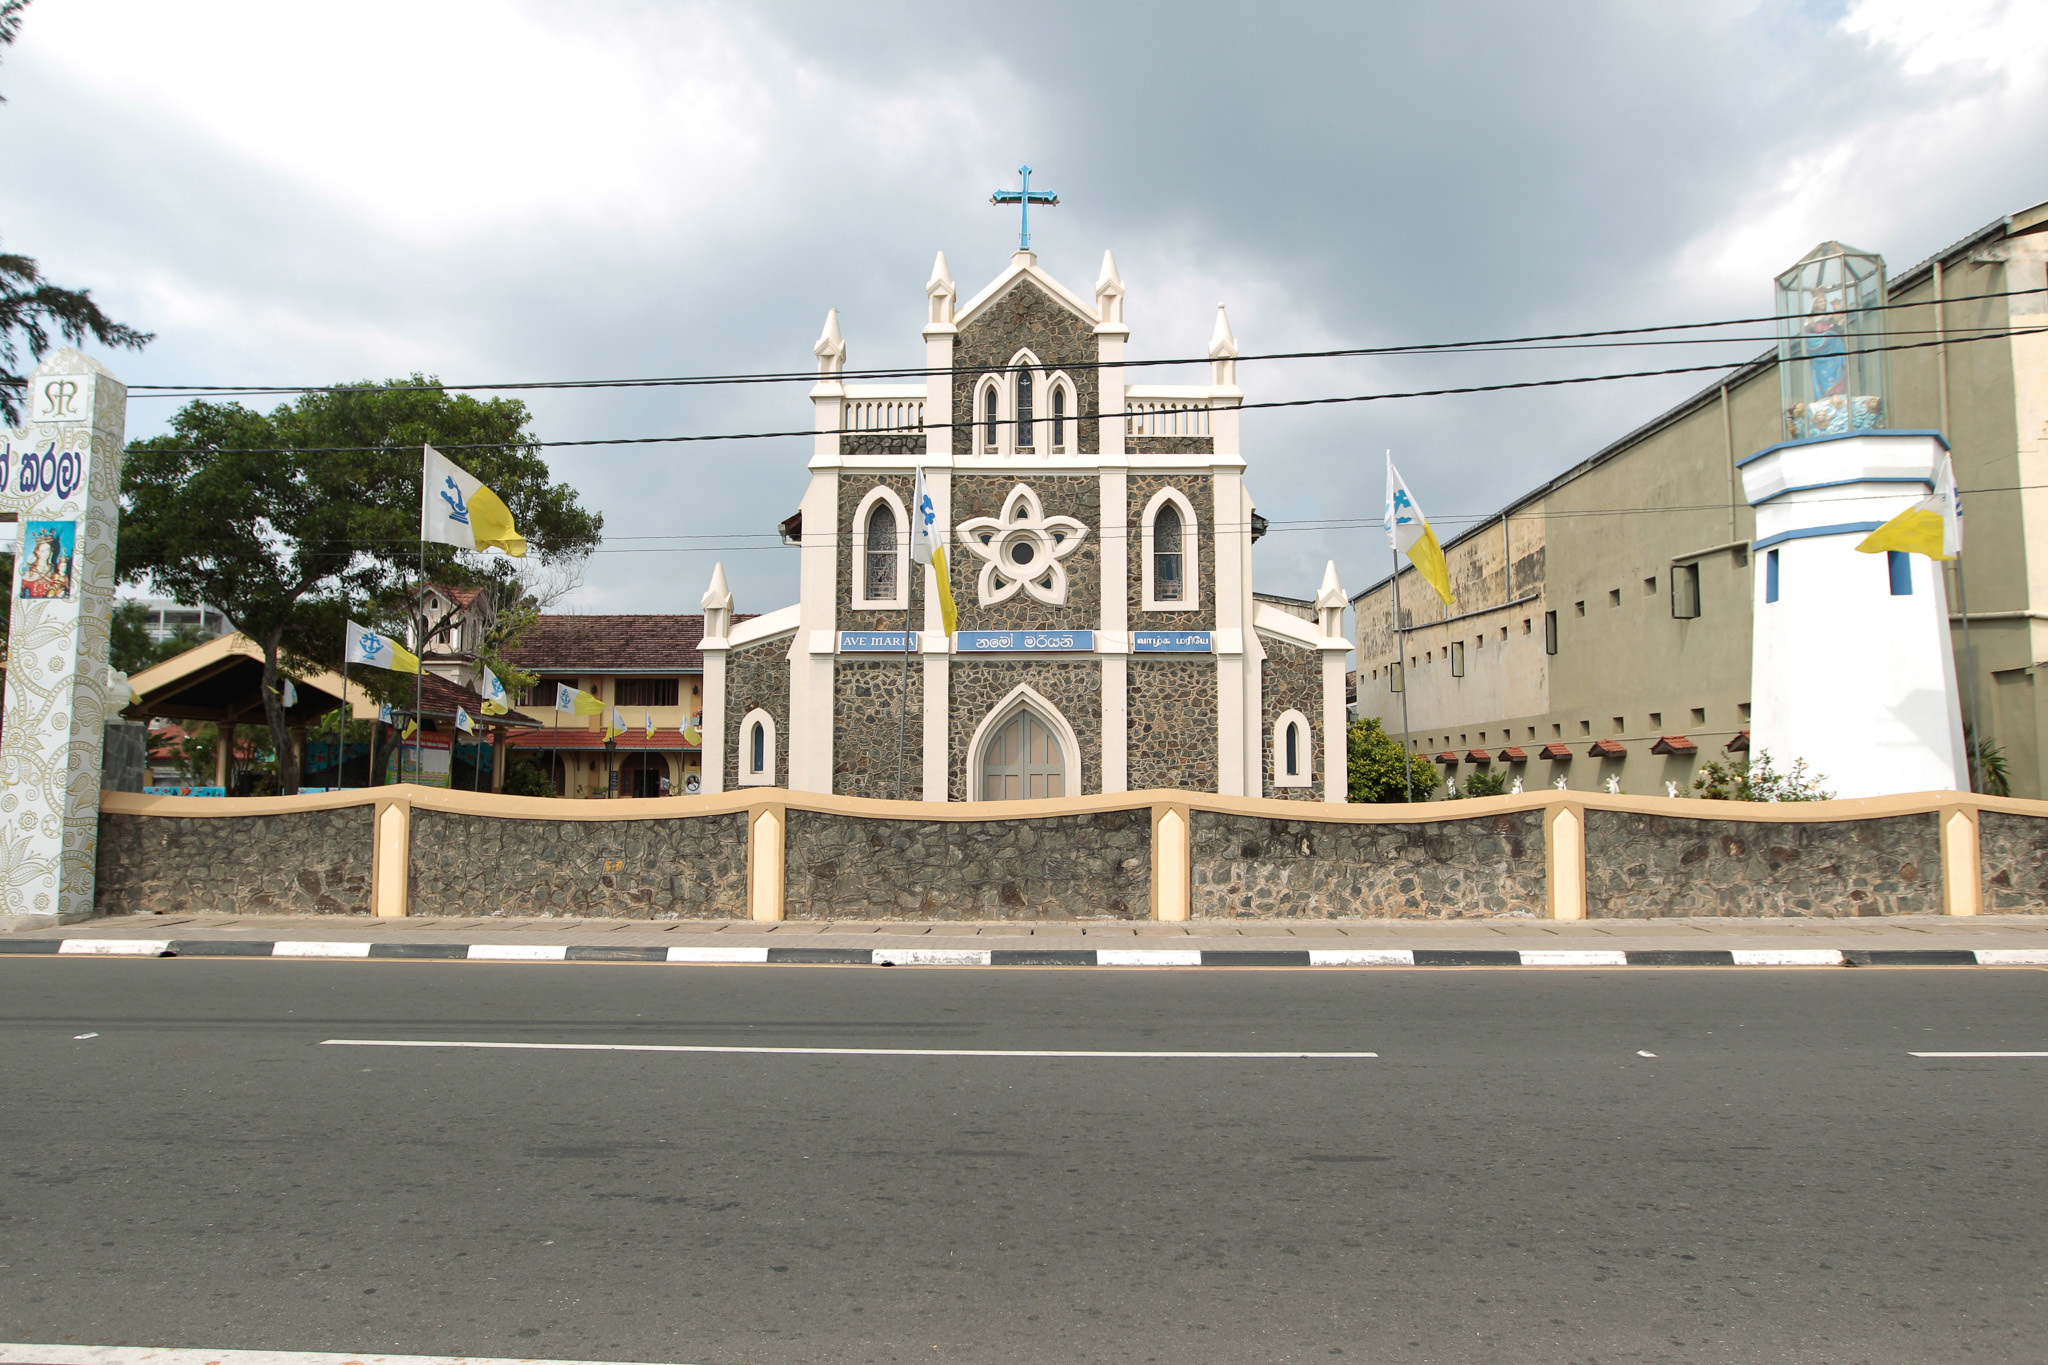 Church of Our Lady of Matara is a church in Matara